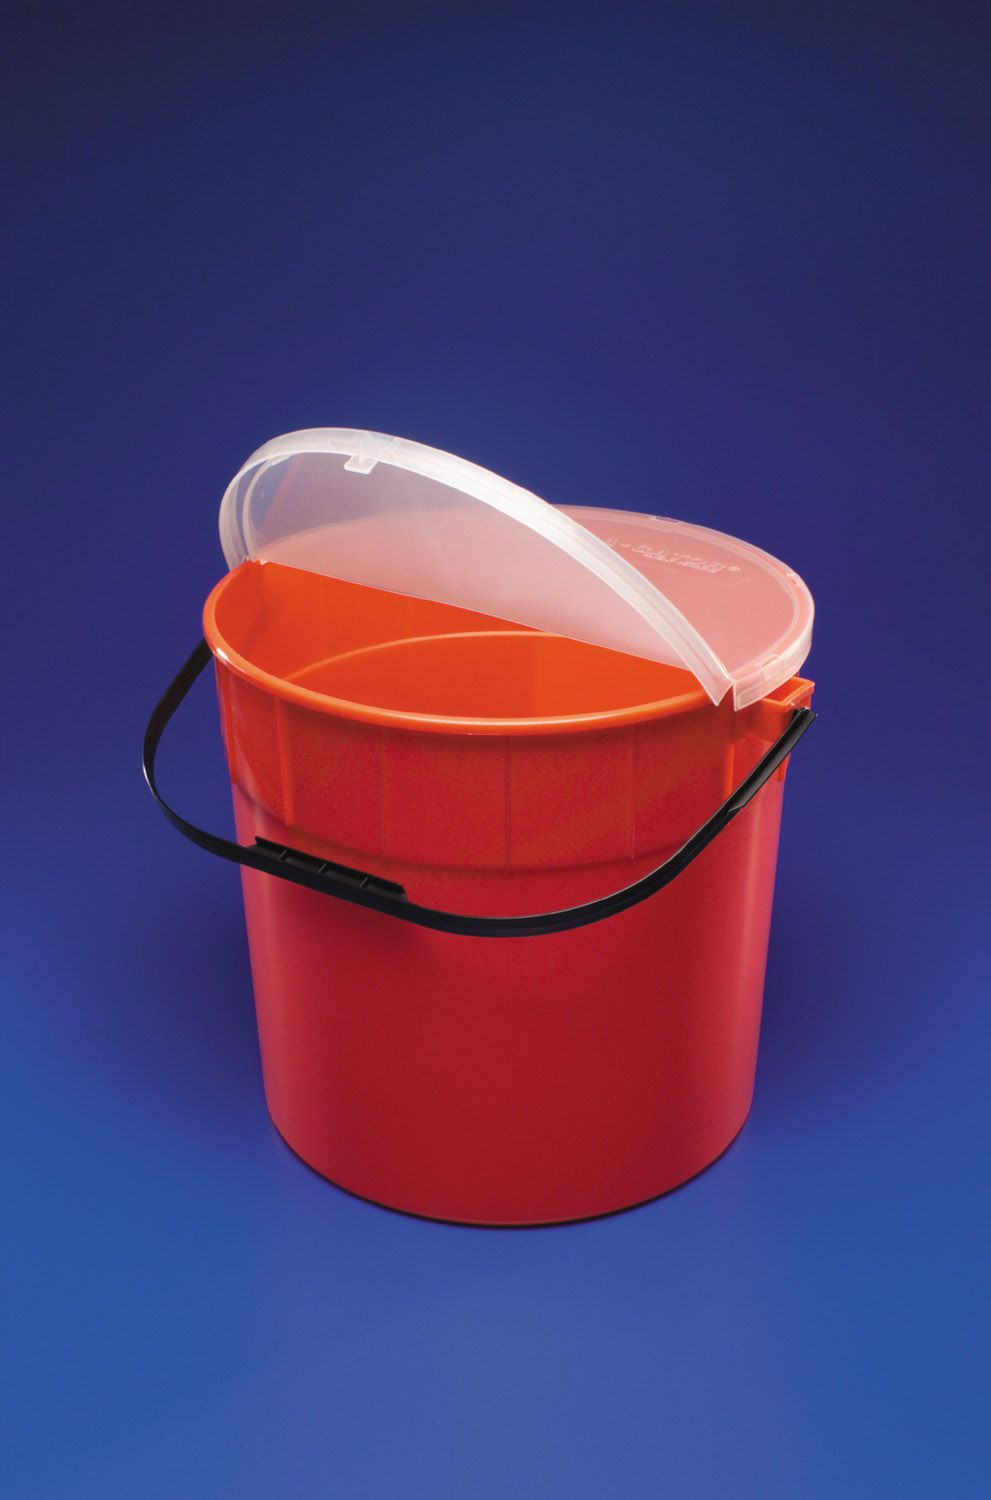 Kendall Sharps Container - Waste, 10 Gl, Red, Sharp-A-Gator, Box of 6 - Model 31143665